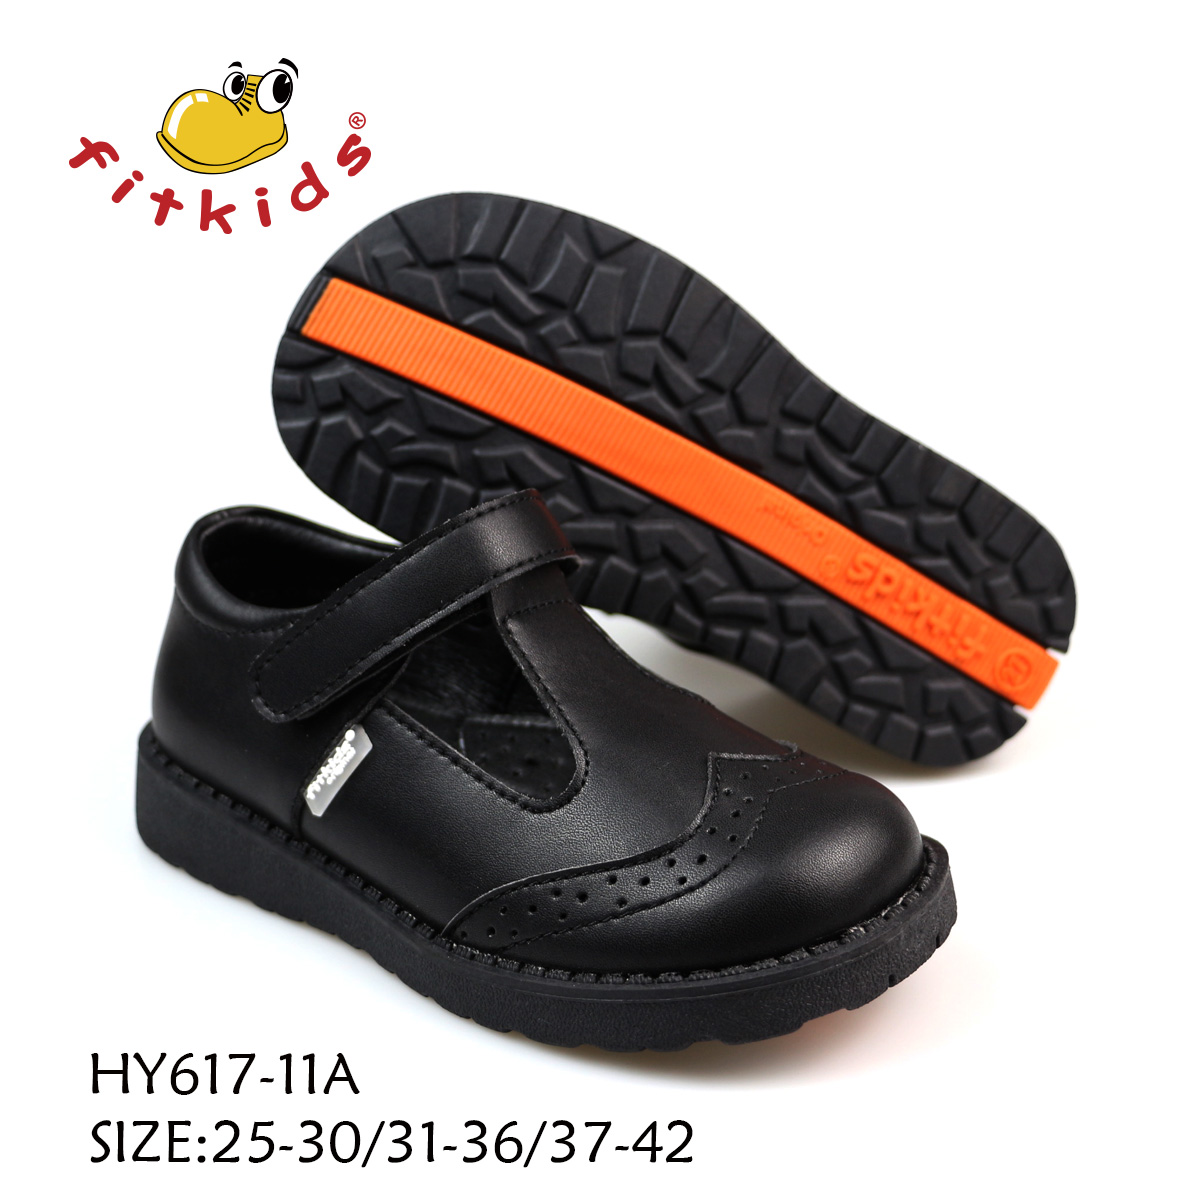 fitkids school shoes